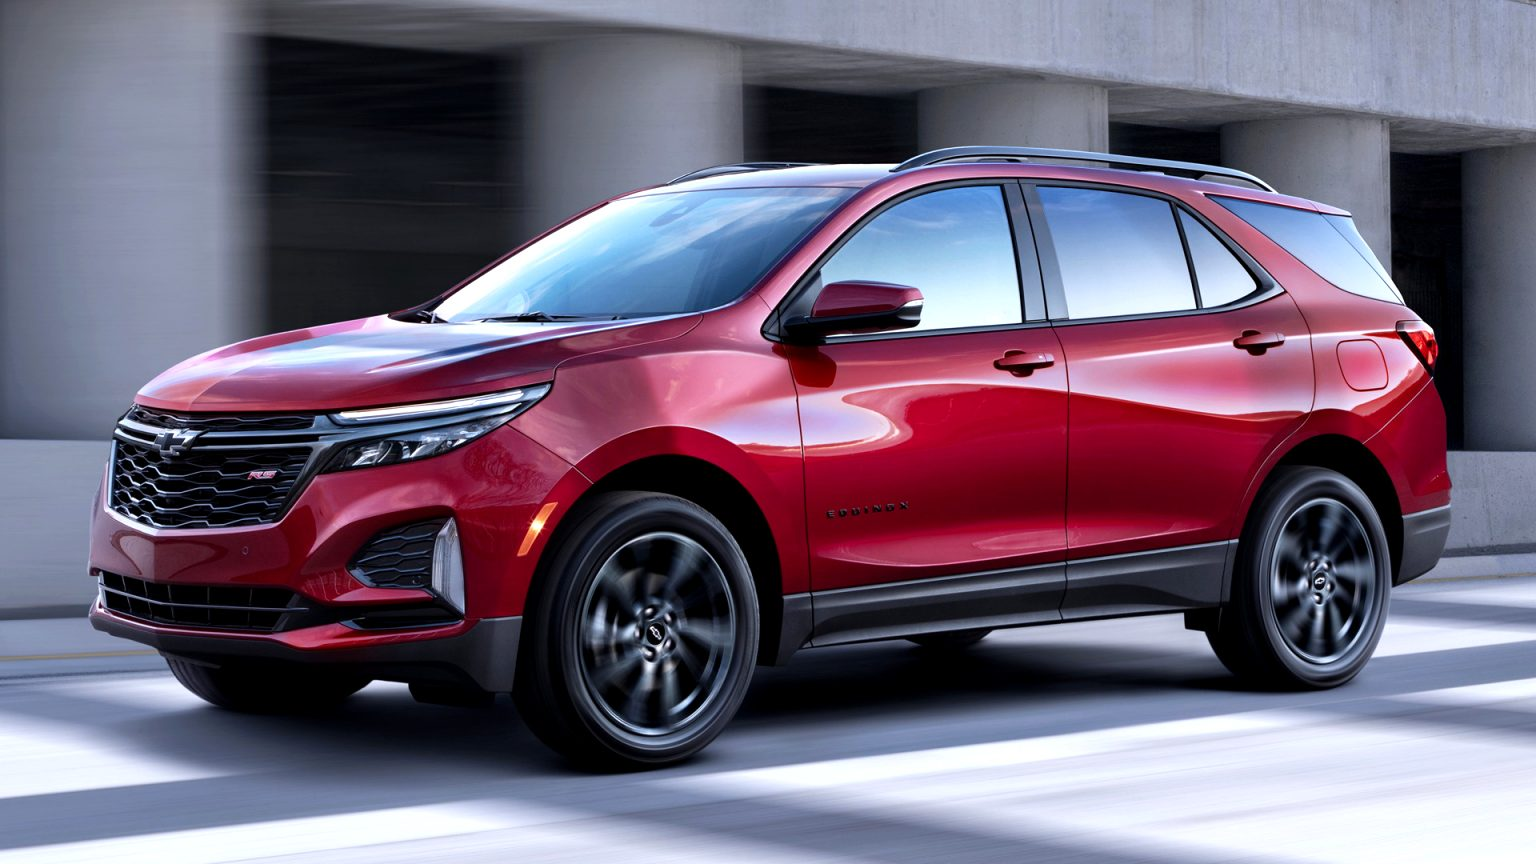 2021 chevrolet equinox Price and Release date